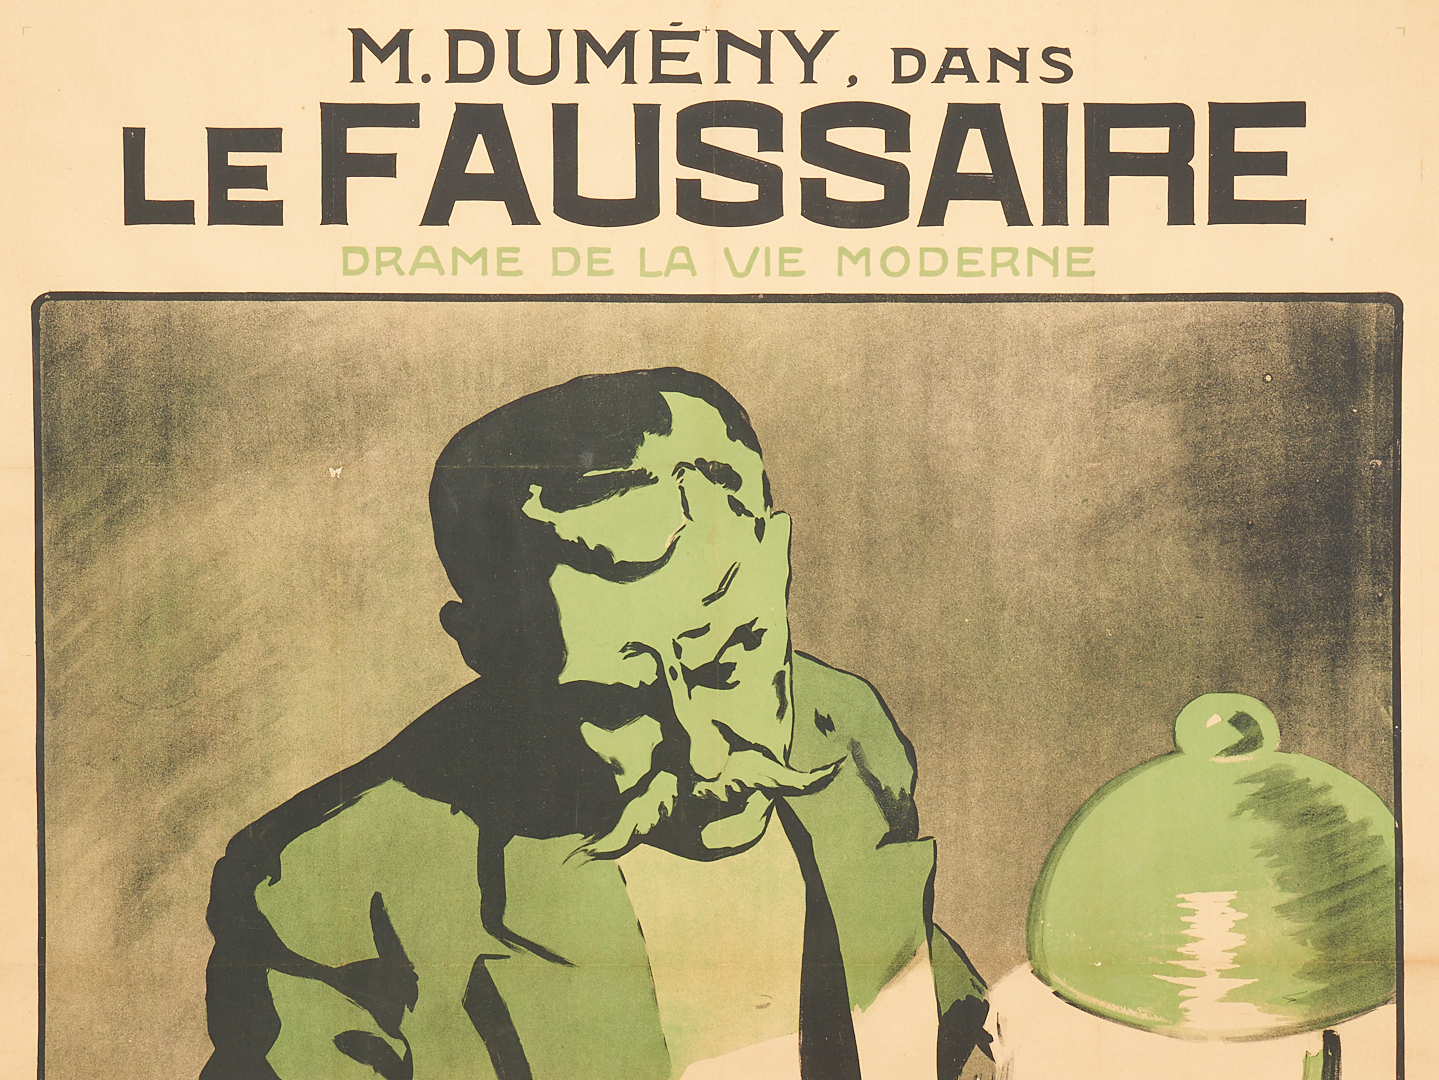 Lot 851: French Movie Poster, M. Dumeny, Le Faussaire, 1912